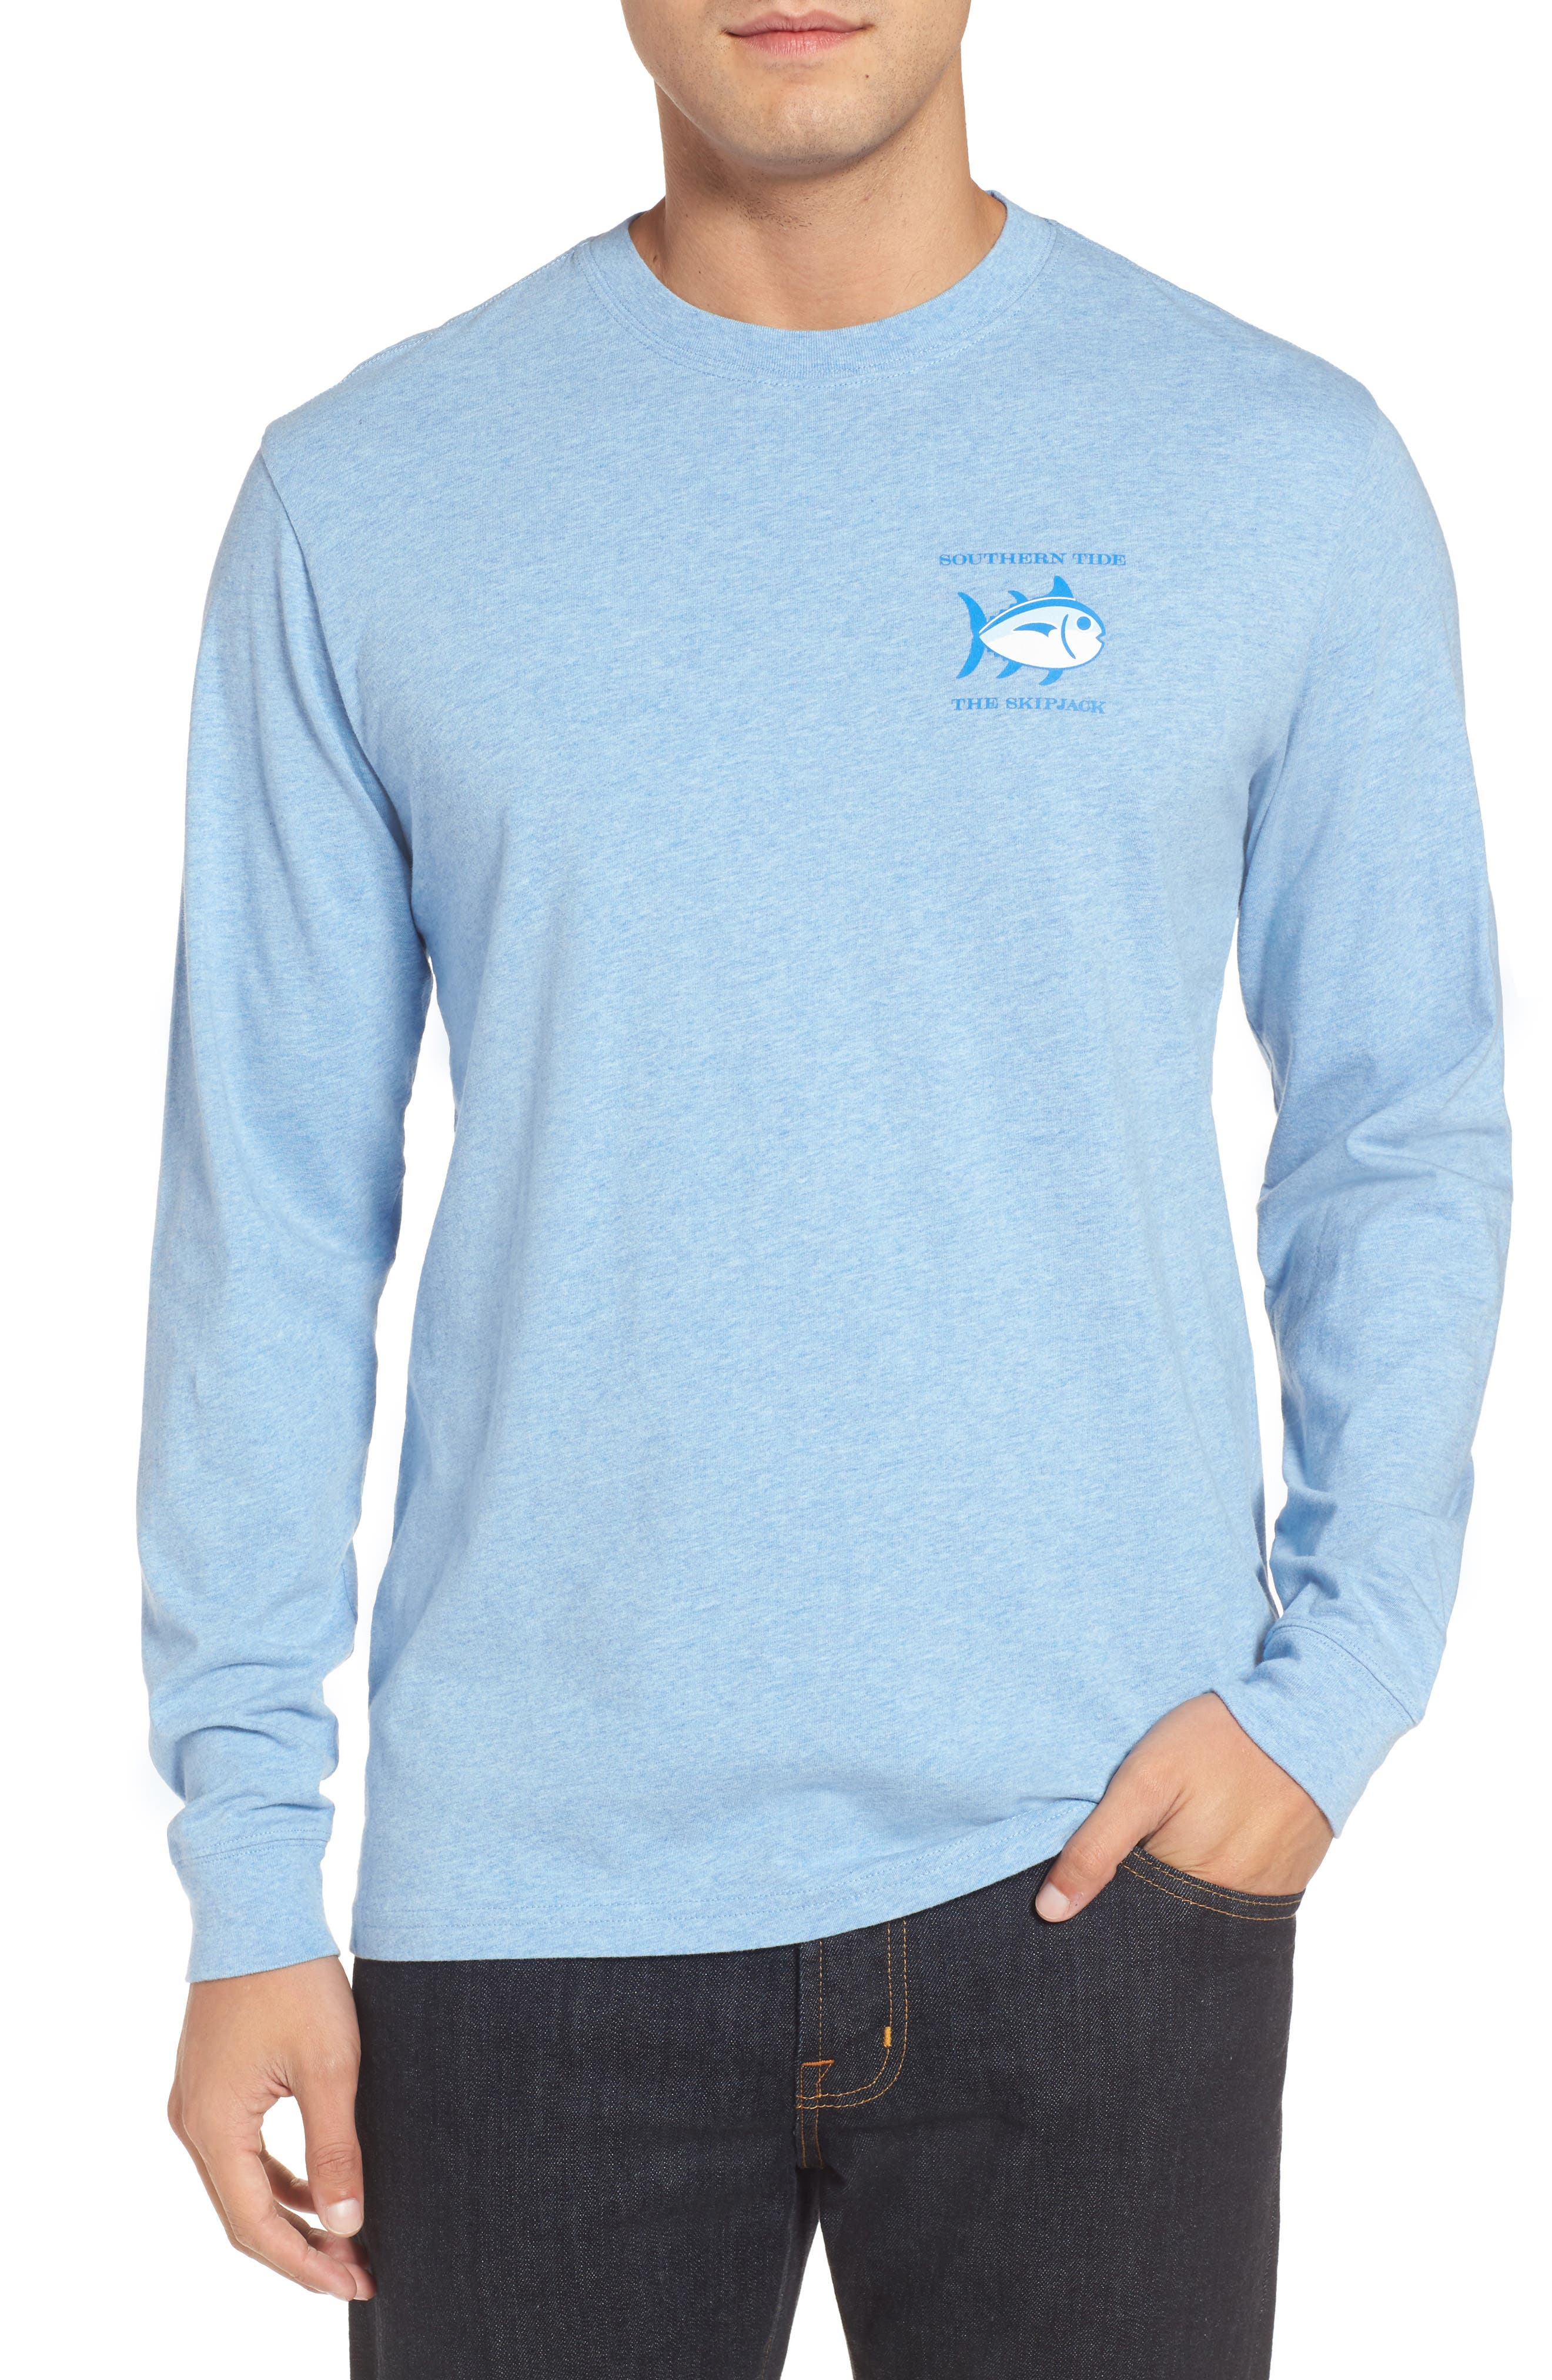 Original Skipjack T-Shirt,                             Main thumbnail 3, color,